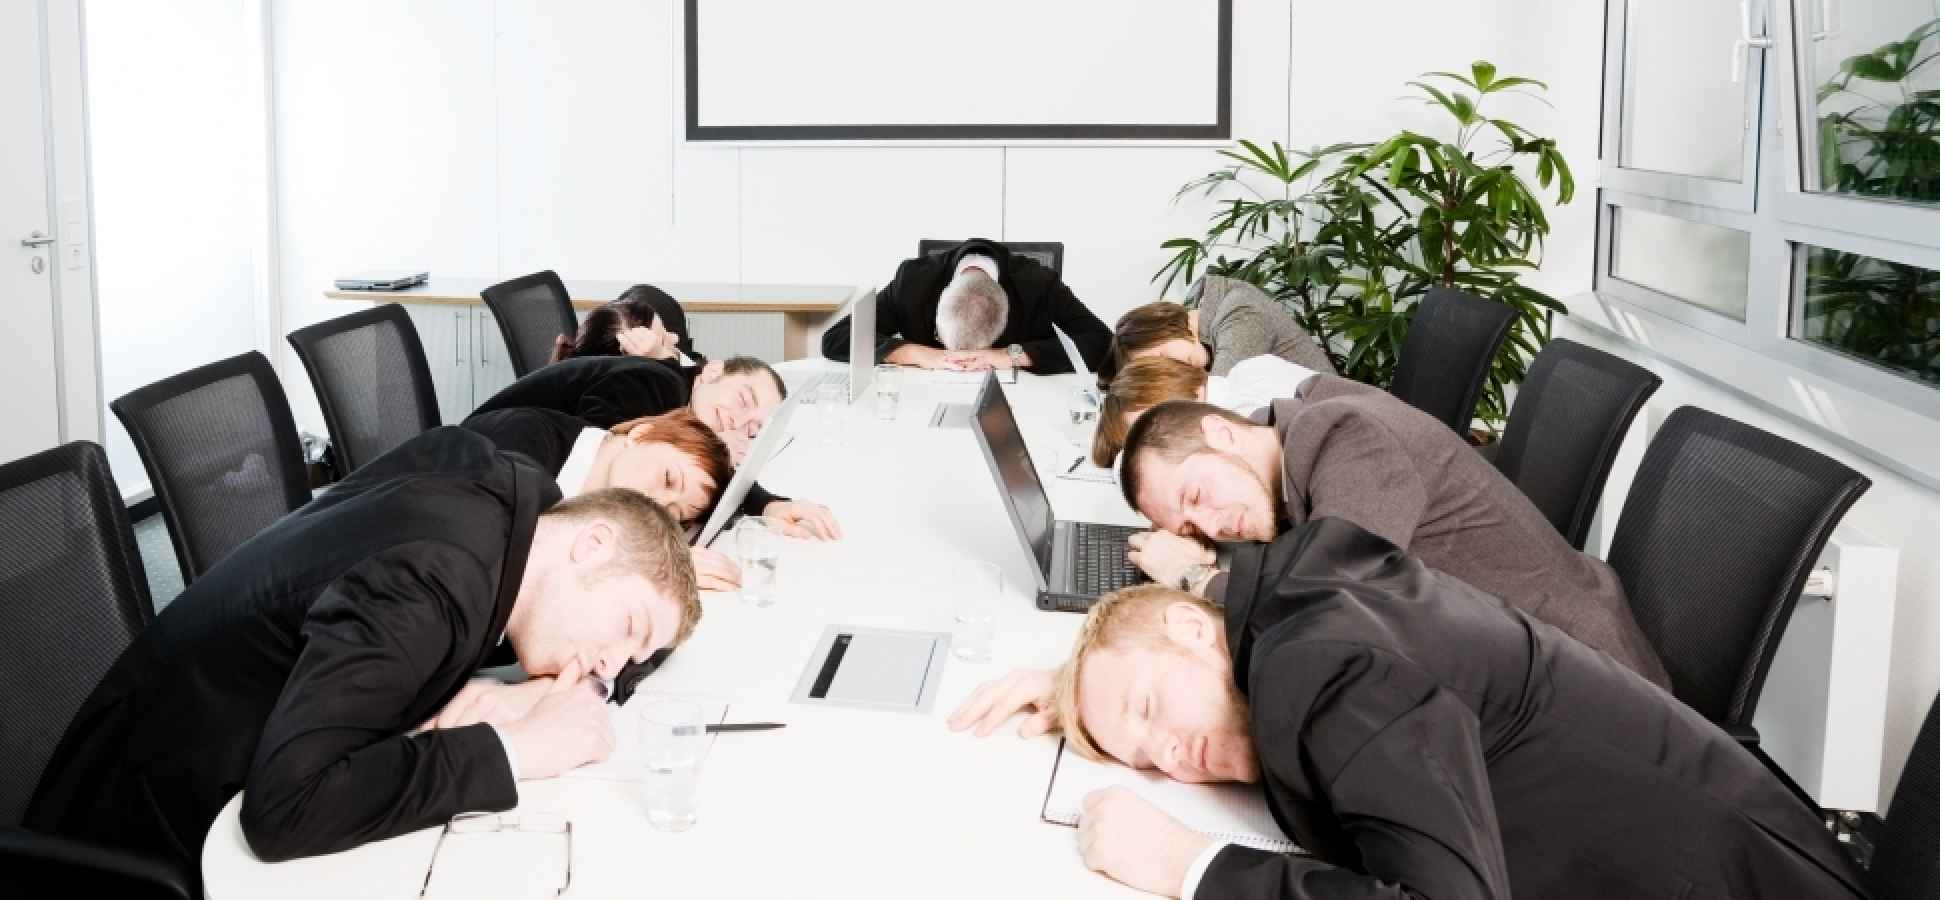 Are Your Business Meetings Boring? 6 Tips to Spice Them Up